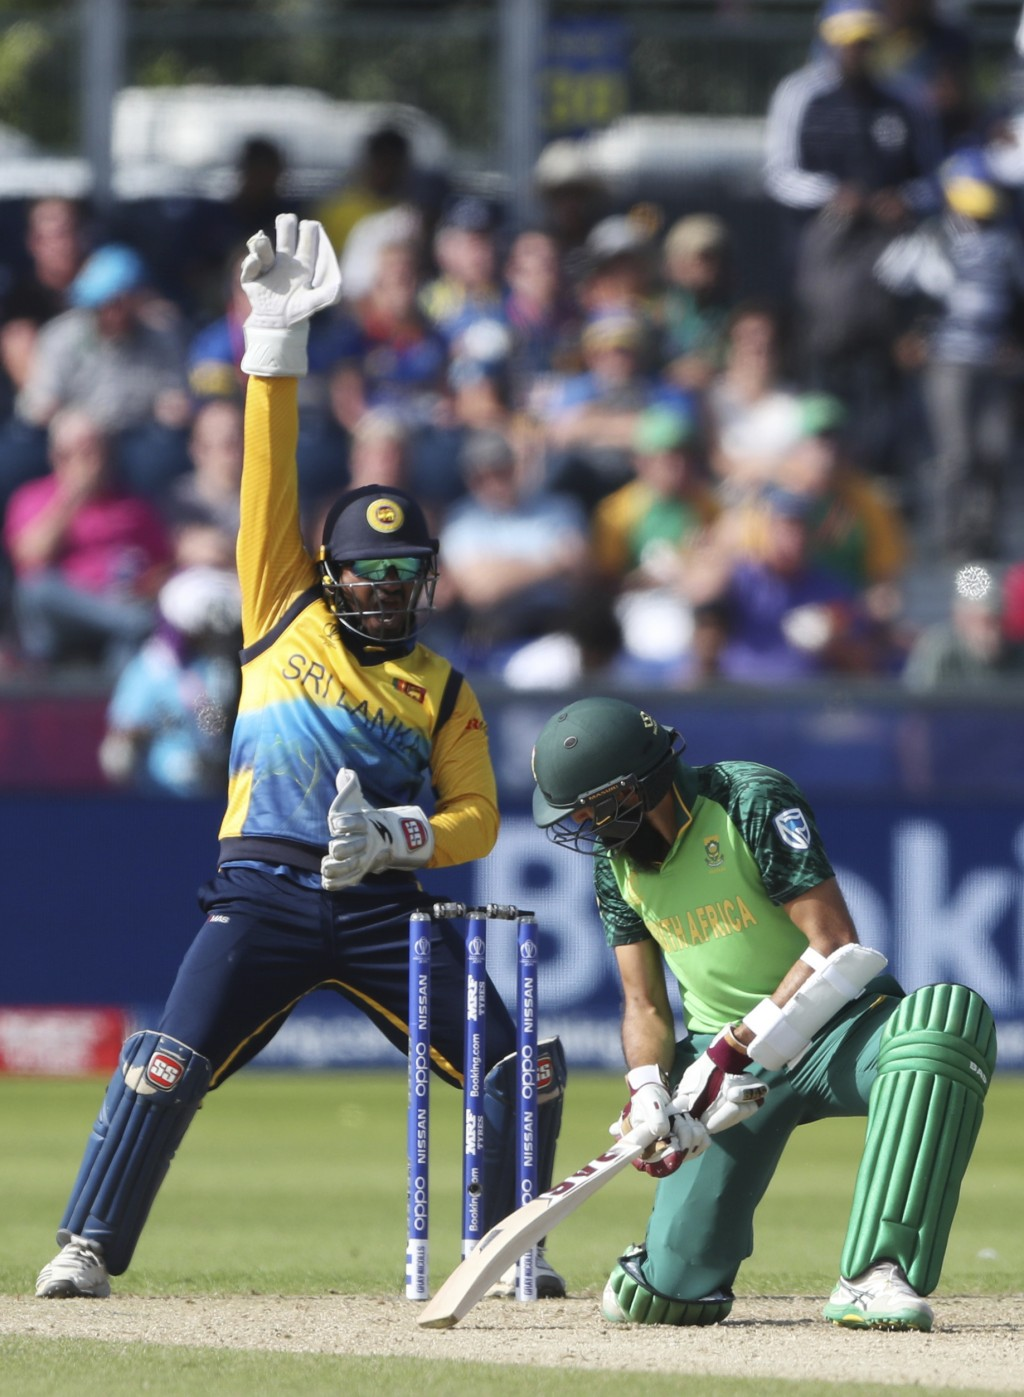 Sri Lanka's wicketkeeper Kusal Perera, left, appeals unsuccessfully for LBW against South Africa's batsman Hashim Amla during the Cricket World Cup ma...